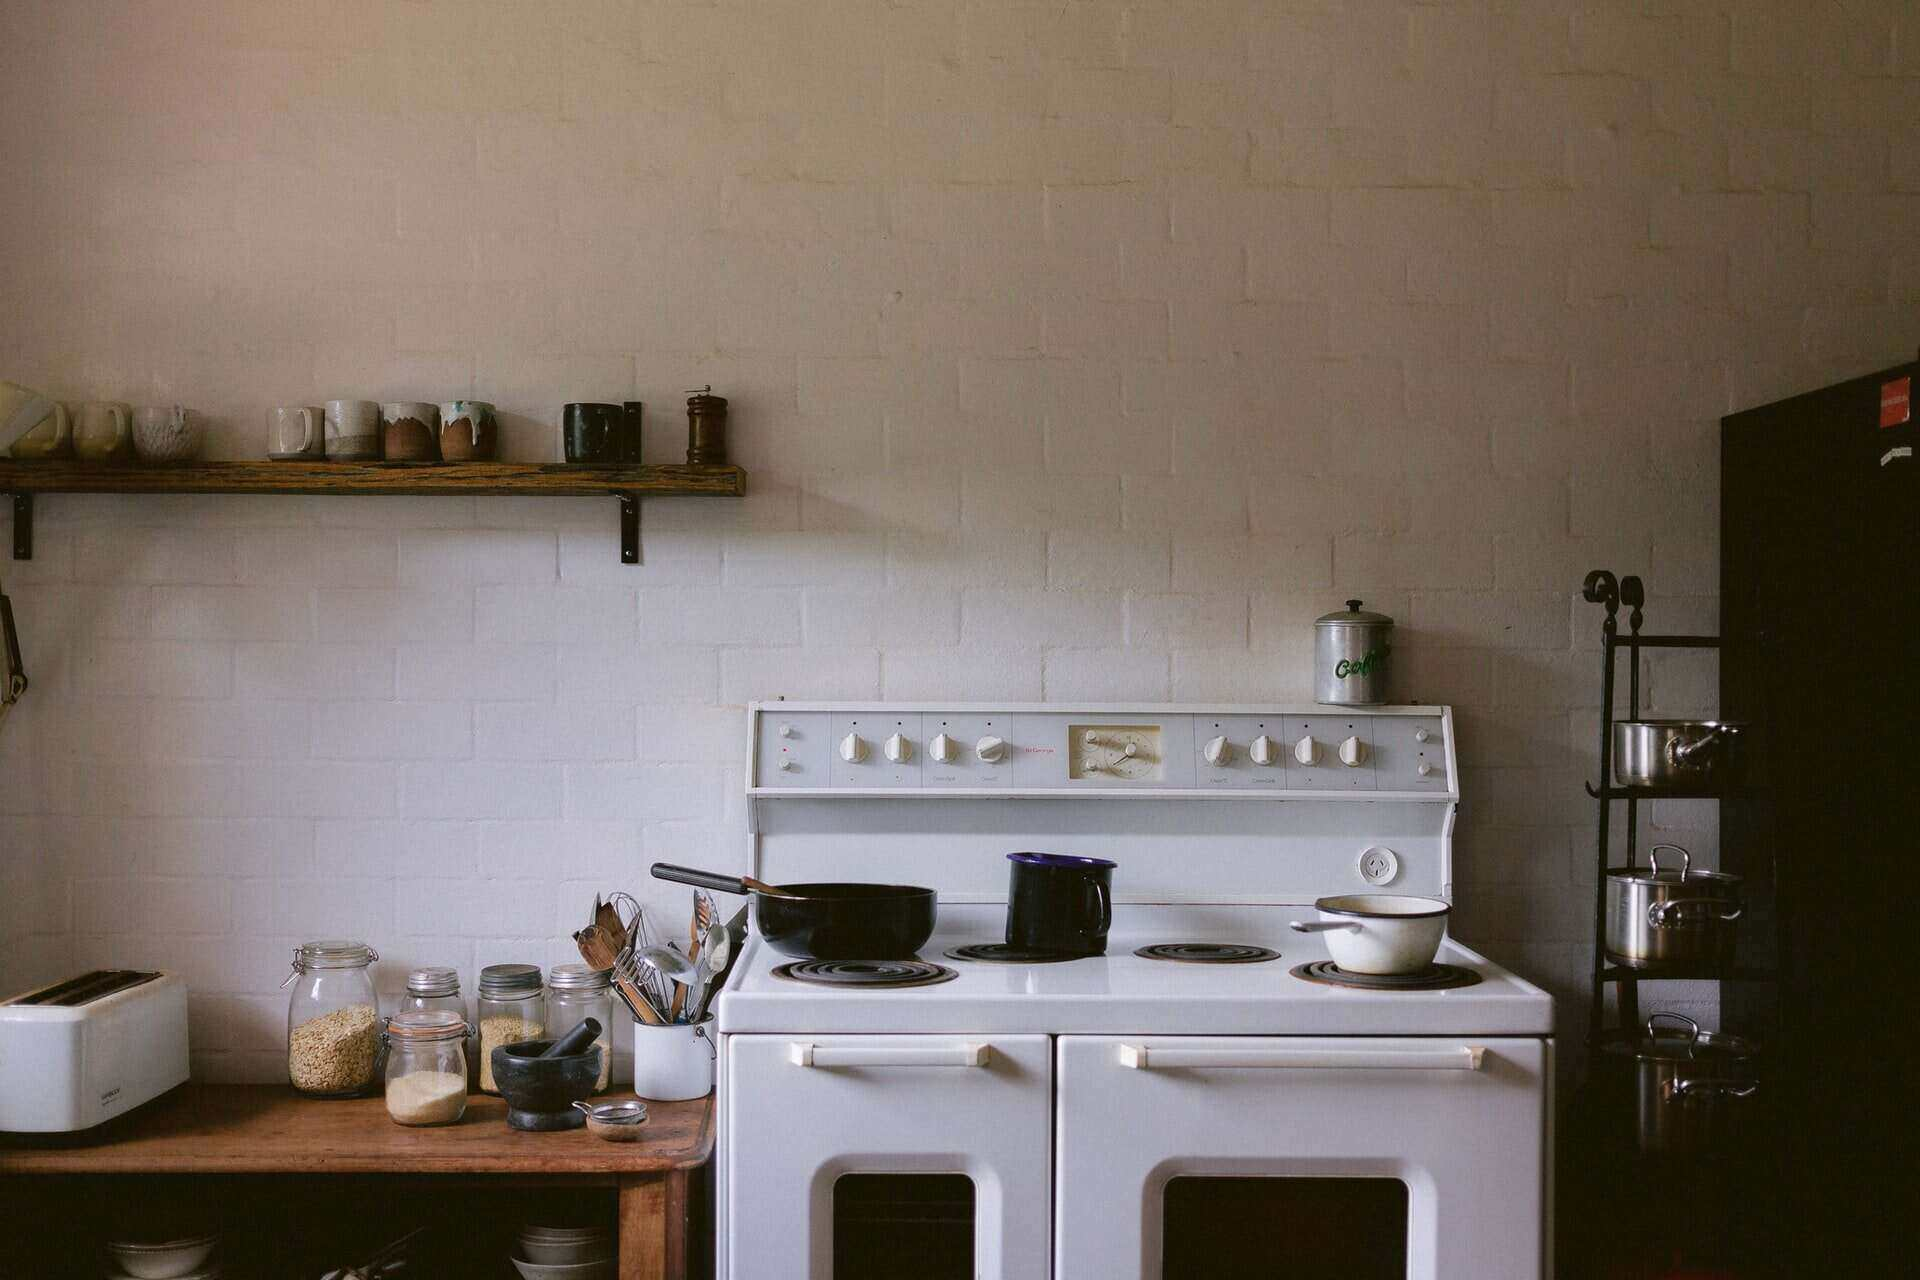 old-fashioned white stove - genius hacks for an energy-efficient kitchen